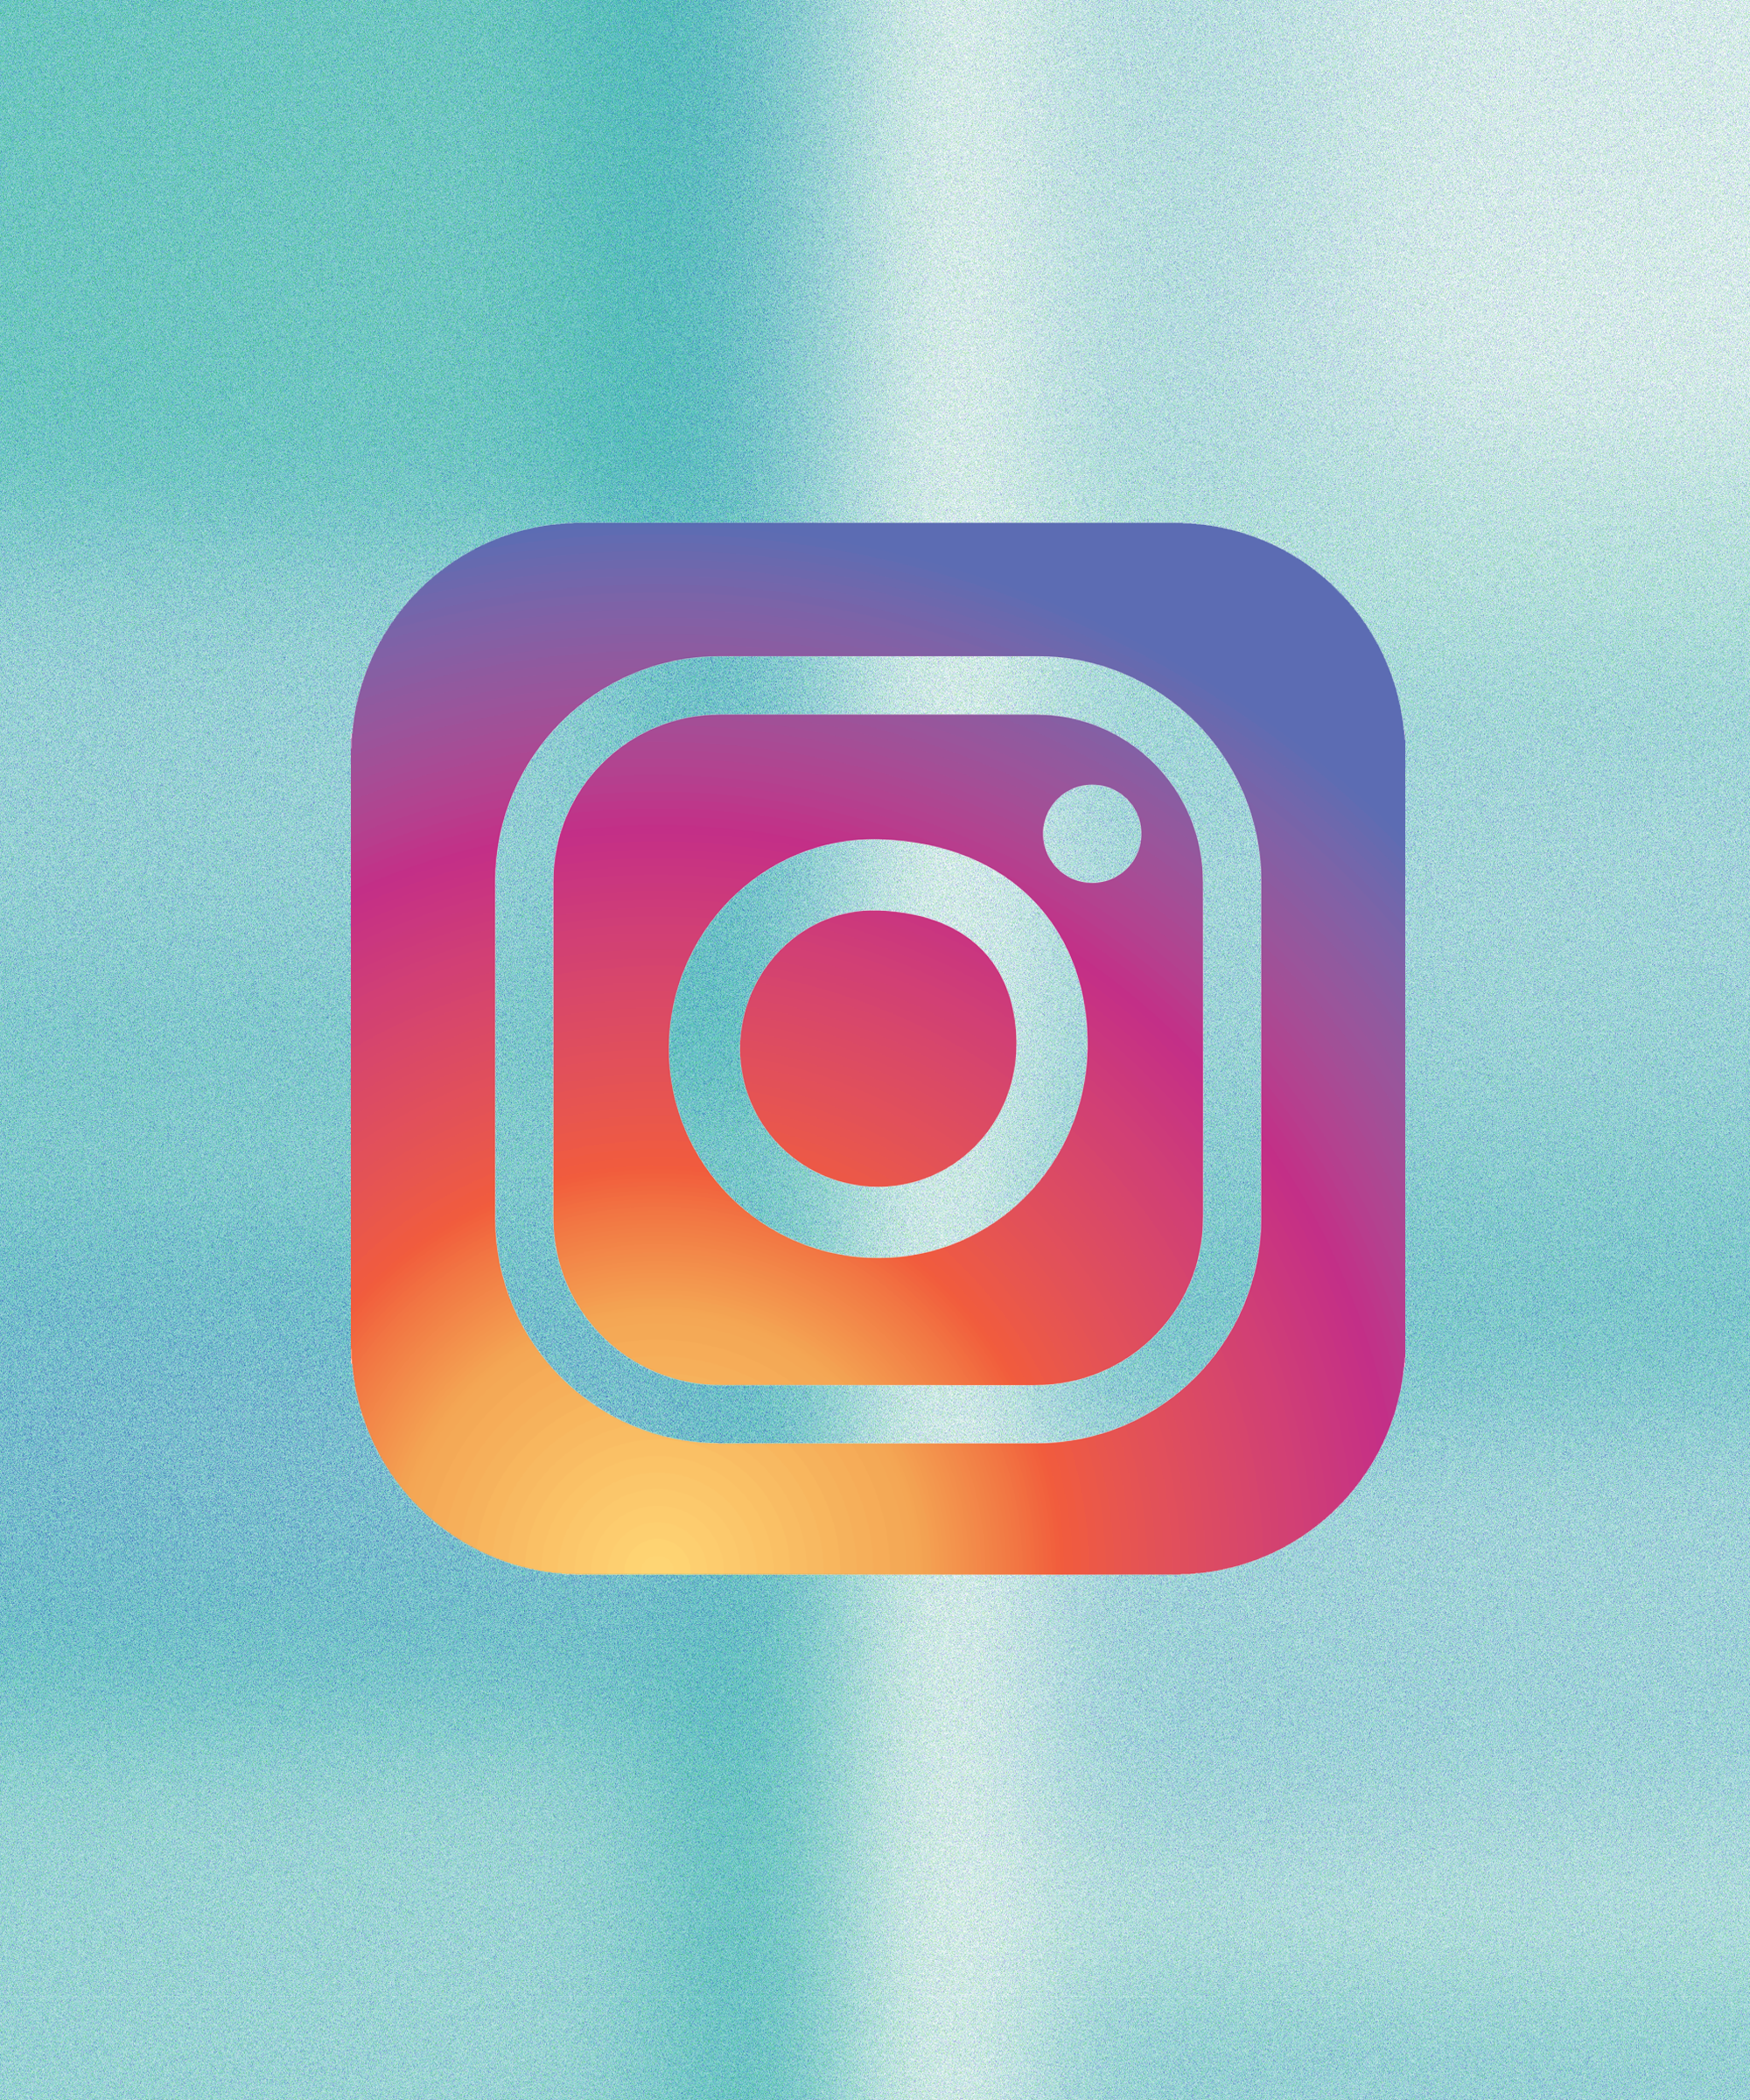 how to make a watermark logo for instagram